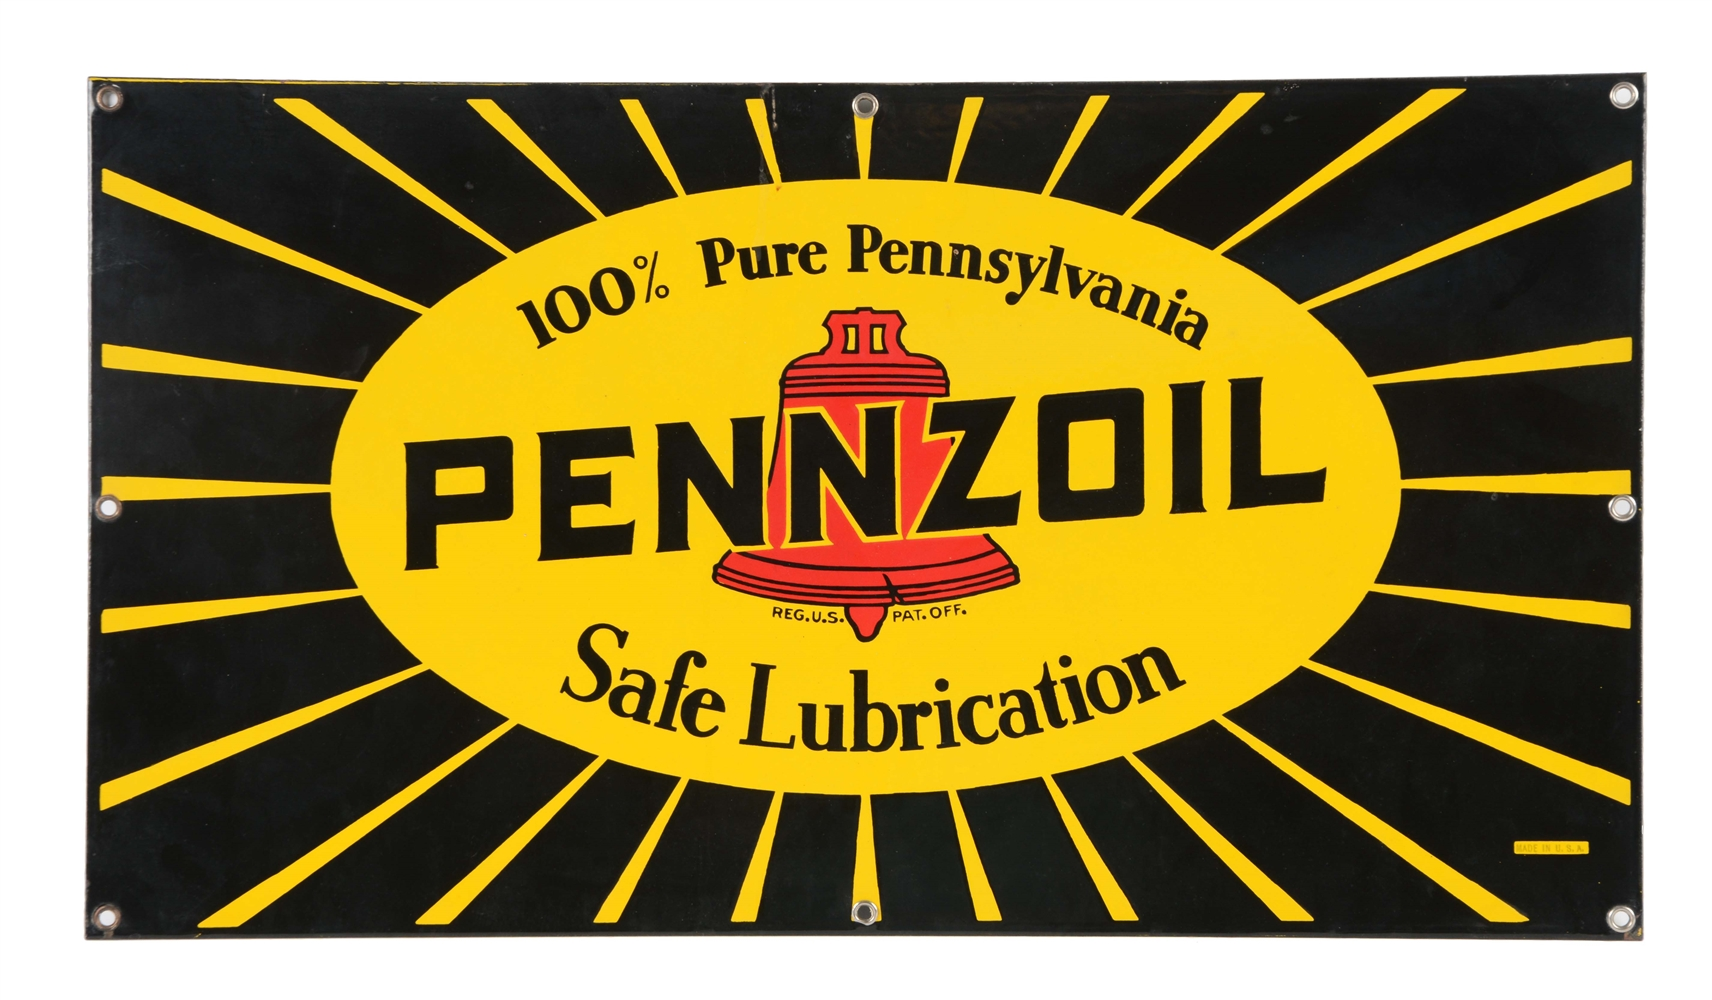 Pennzoil Safe Lubrication Porcelain Sign.